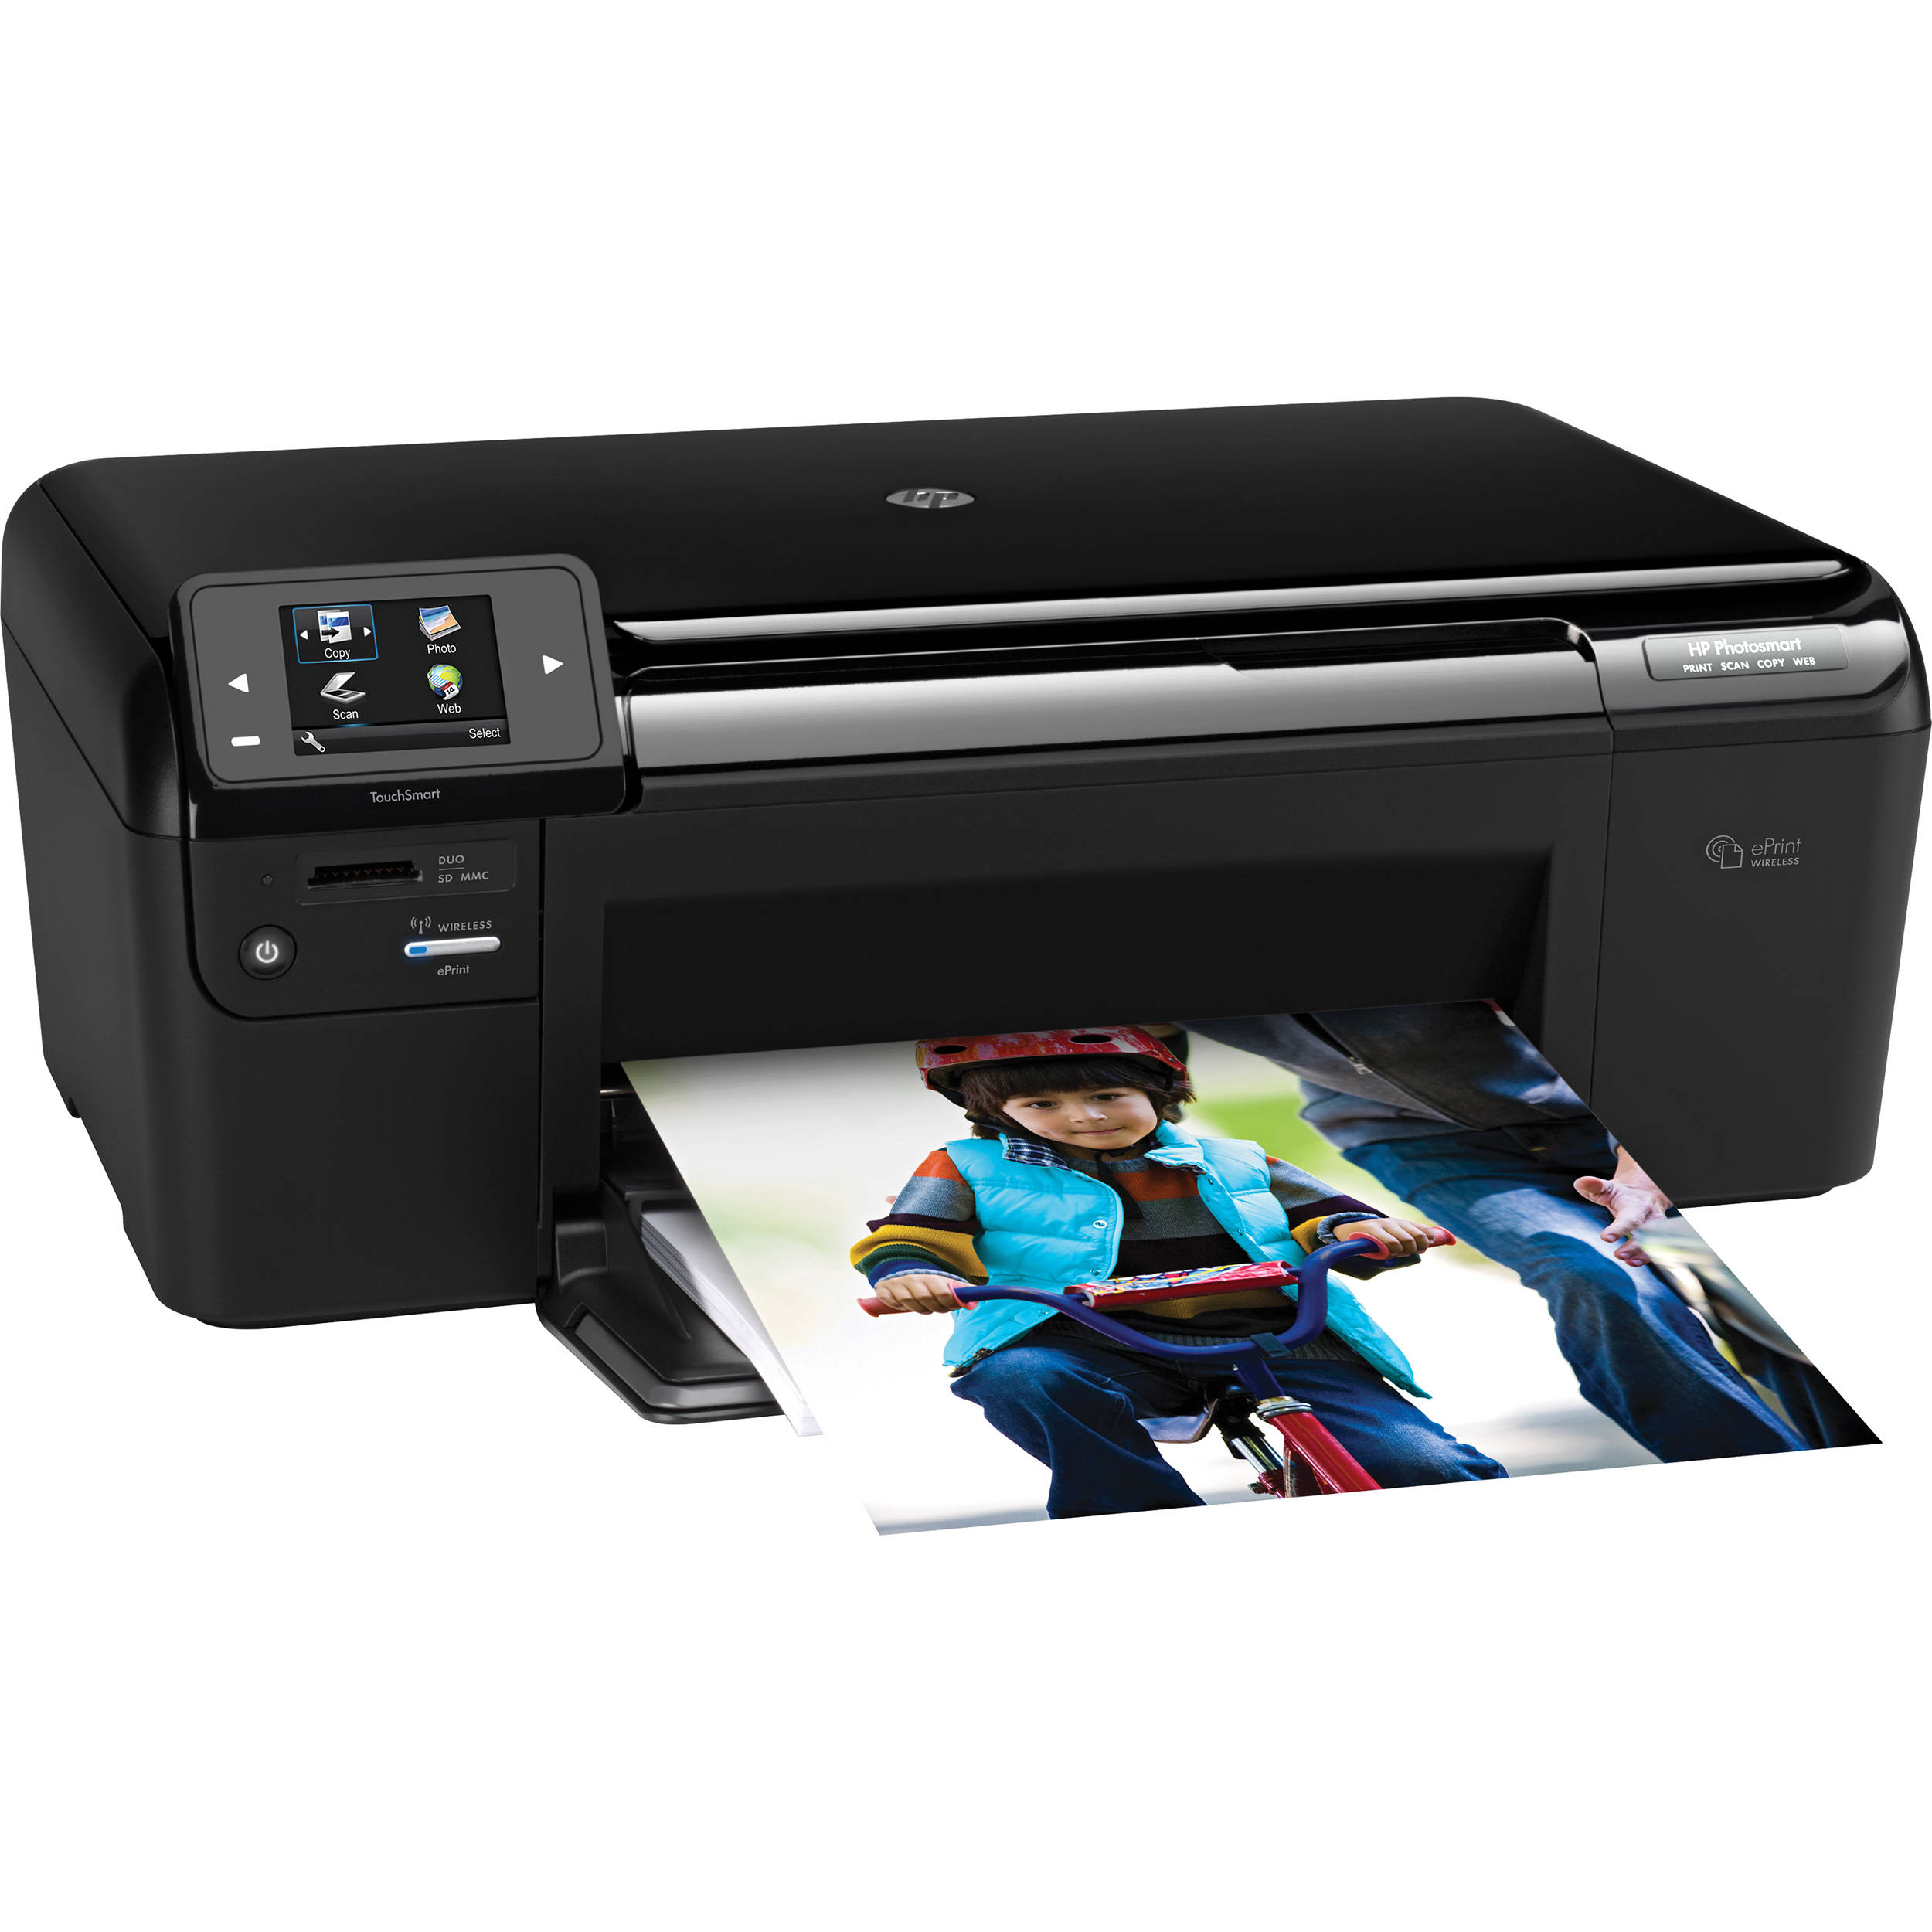 Hp photosmart c4280 all-in-one inkjet printer HP Universal Print Driver - Wikipedia